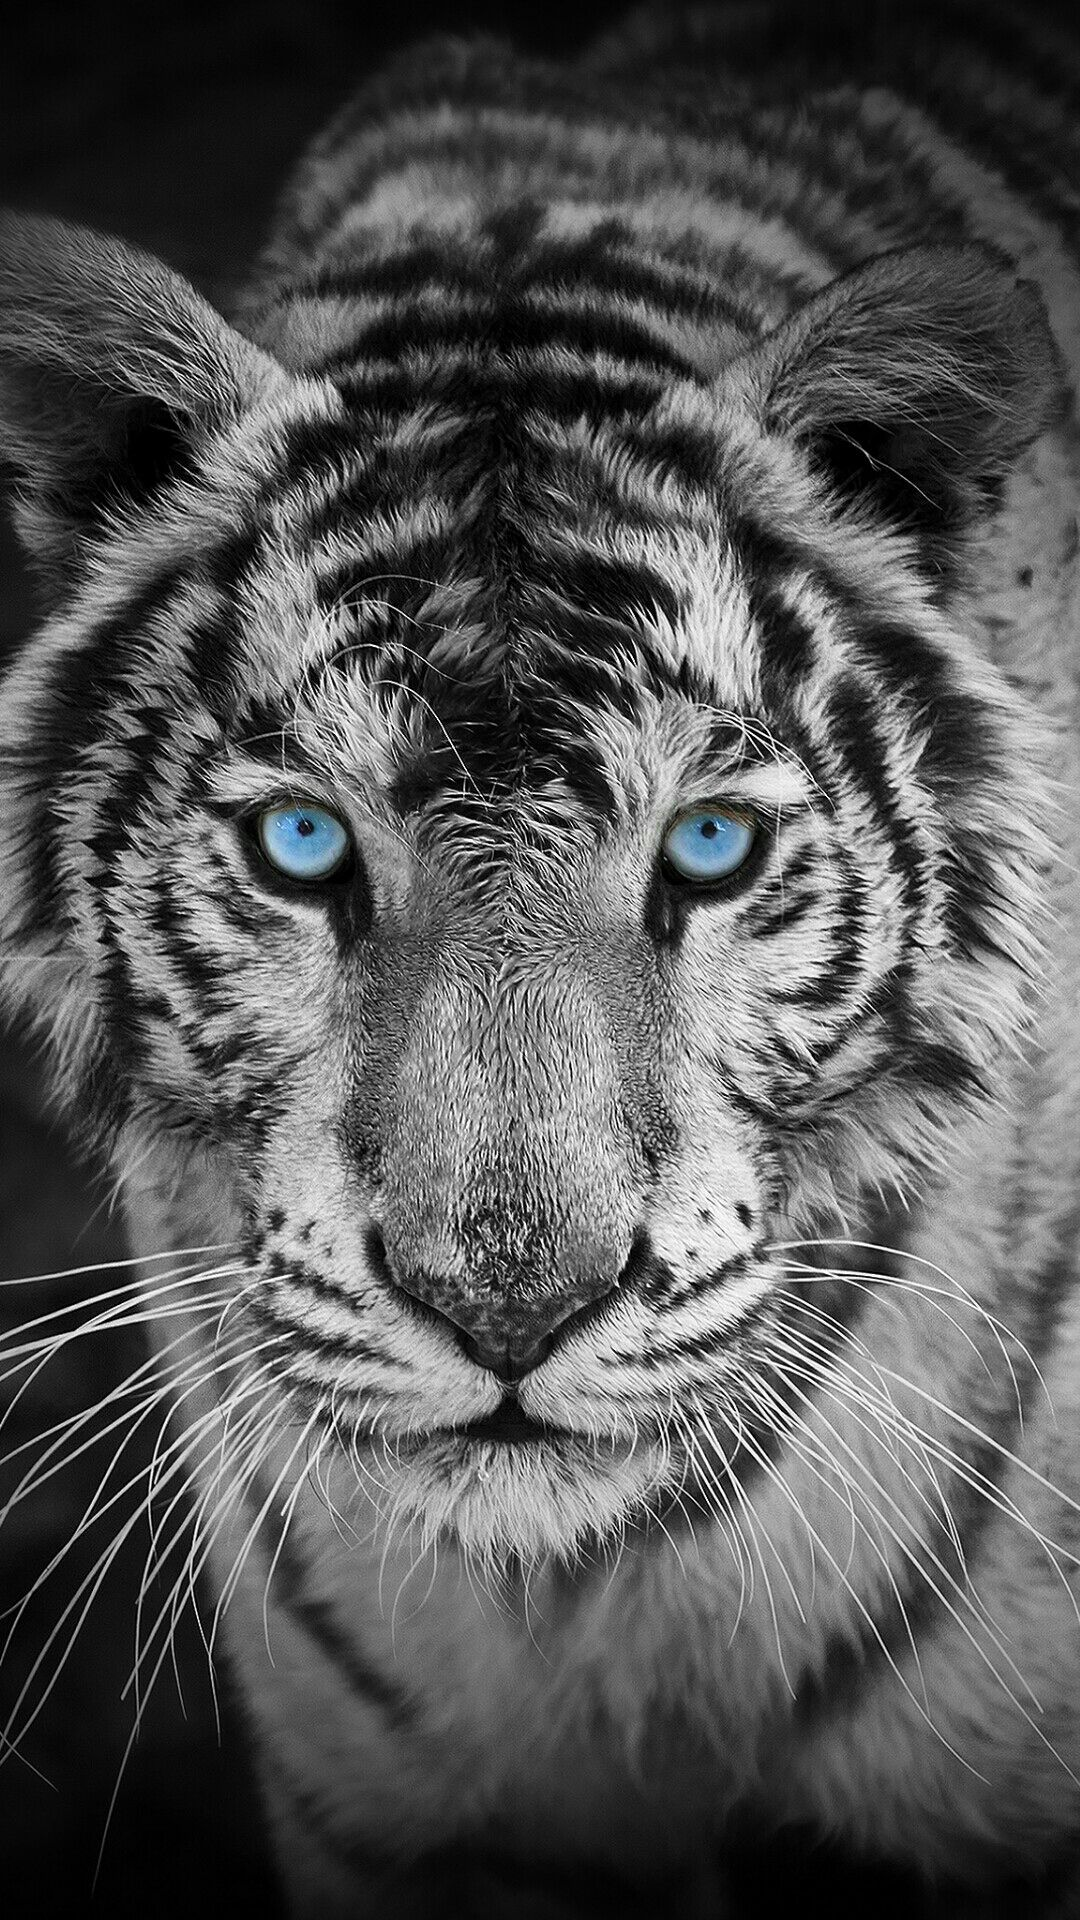 Tiger Background Hd Hupages Download Iphone Wallpapers Wild Animal Wallpaper Tiger Wallpaper Animal Wallpaper